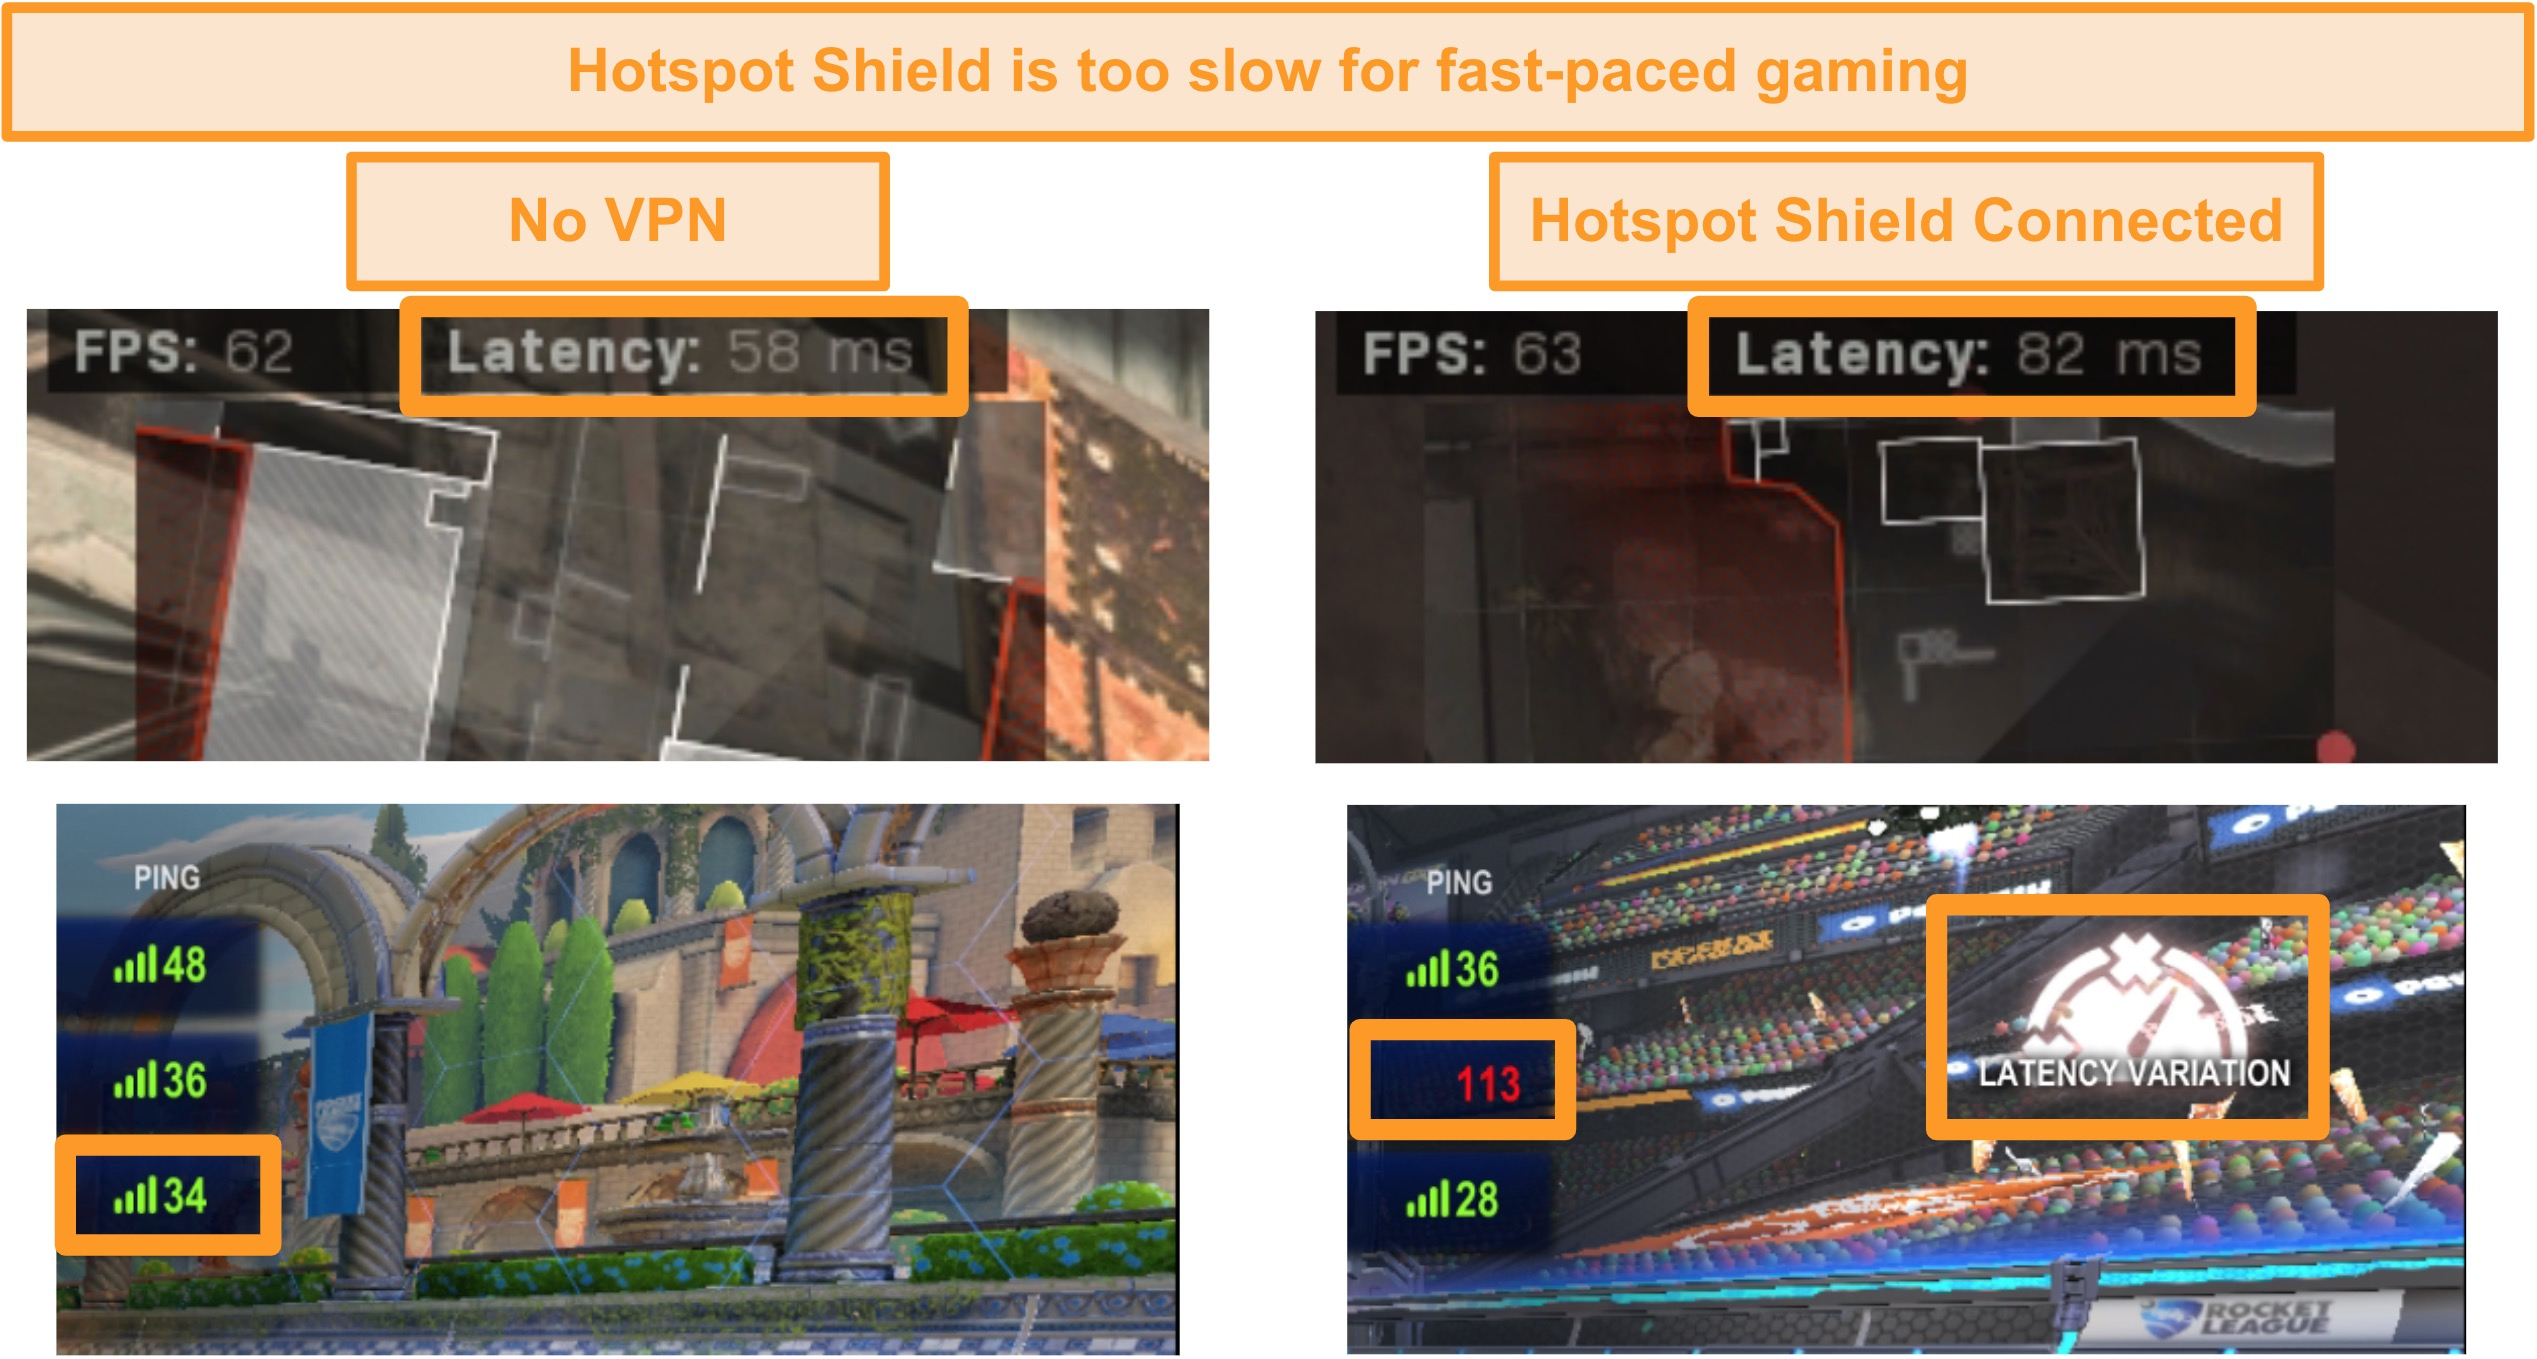 Screenshot of Call of Duty: Modern Warfare and Rocket League tested for latency increases when connected to Hotspot Shield VPN on PC.